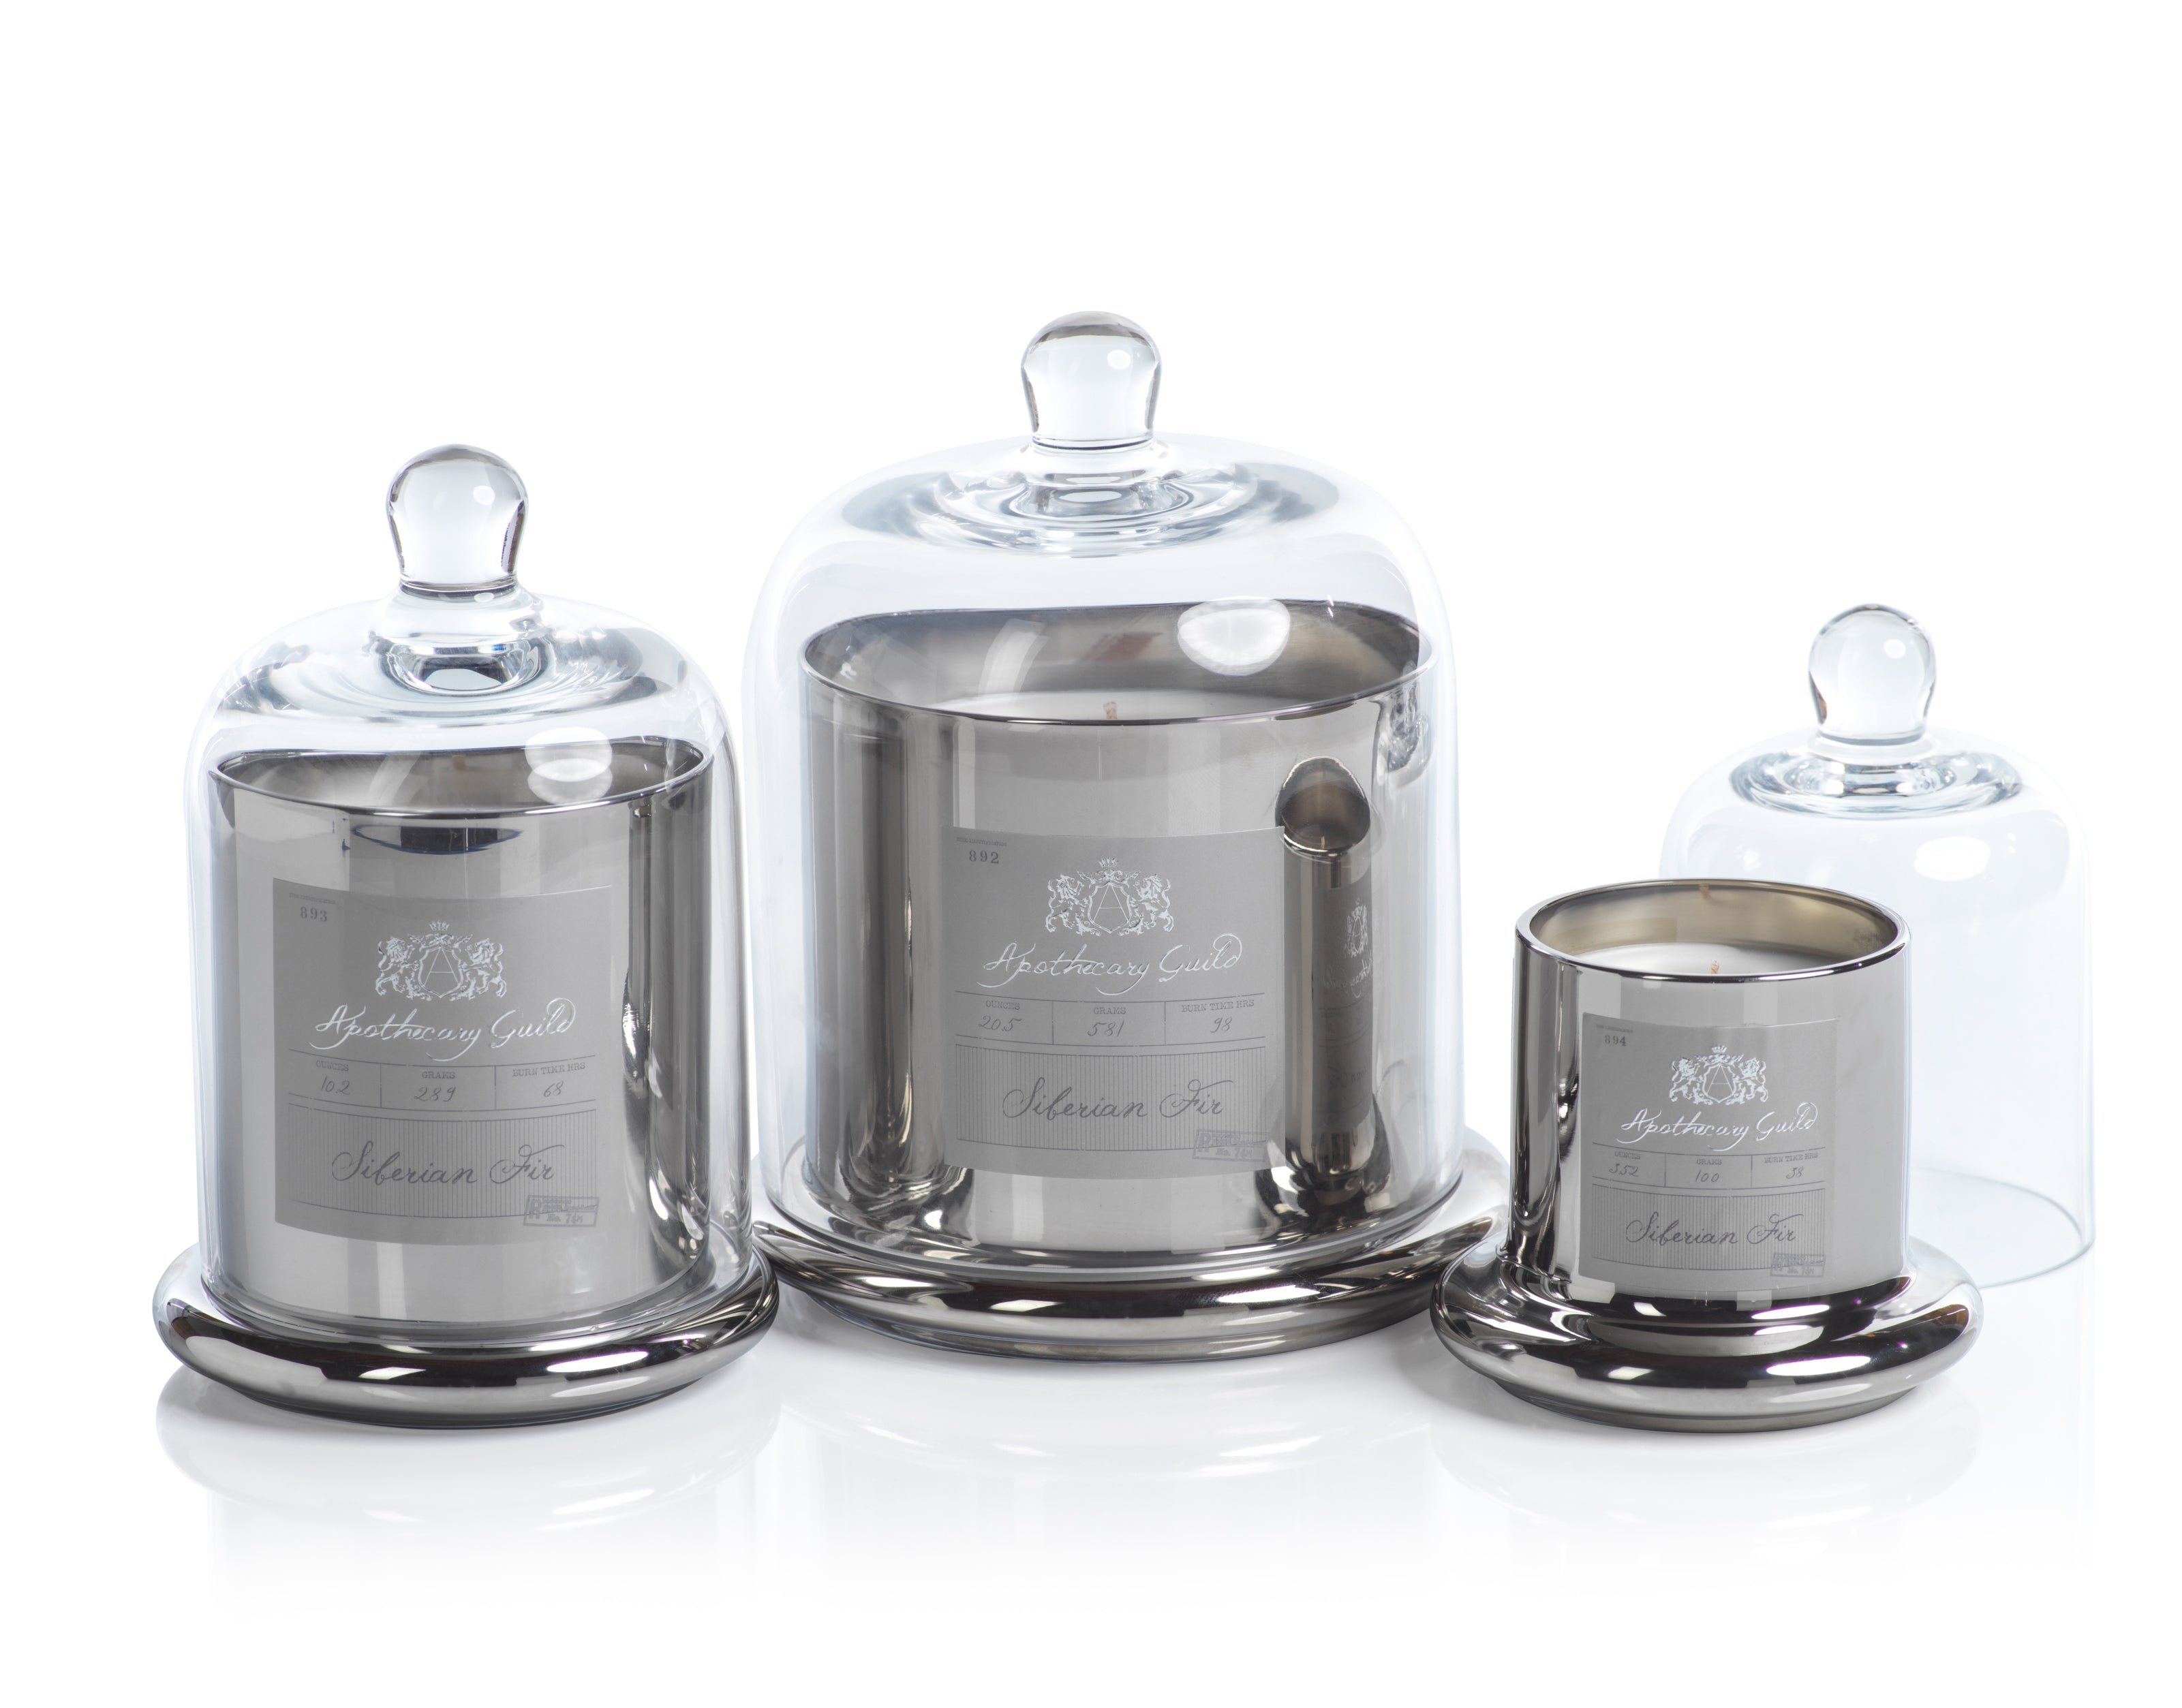 Apothecary Guild Domed Candle - Silver - Siberian Fir - CARLYLE AVENUE